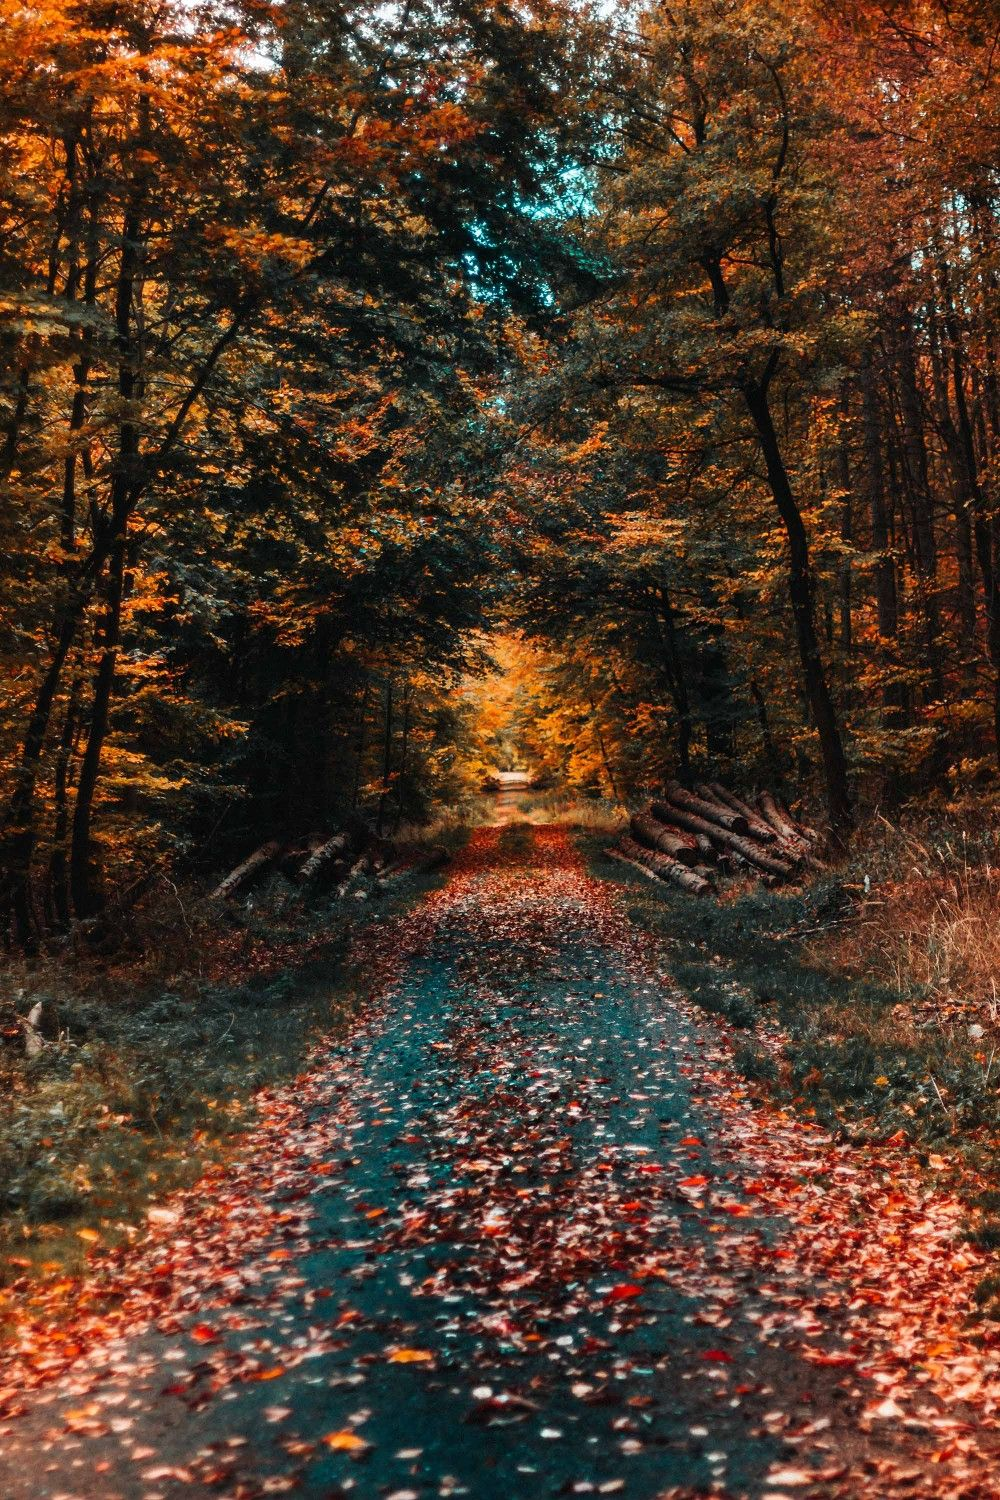 Autumn Road Wallpaper Android Wallpaper Iphone Wallpaper Hdwallpaper Best Wallpaper Pc Hd Fall Wallpaper Fall Wallpaper Tumblr Free Fall Wallpaper